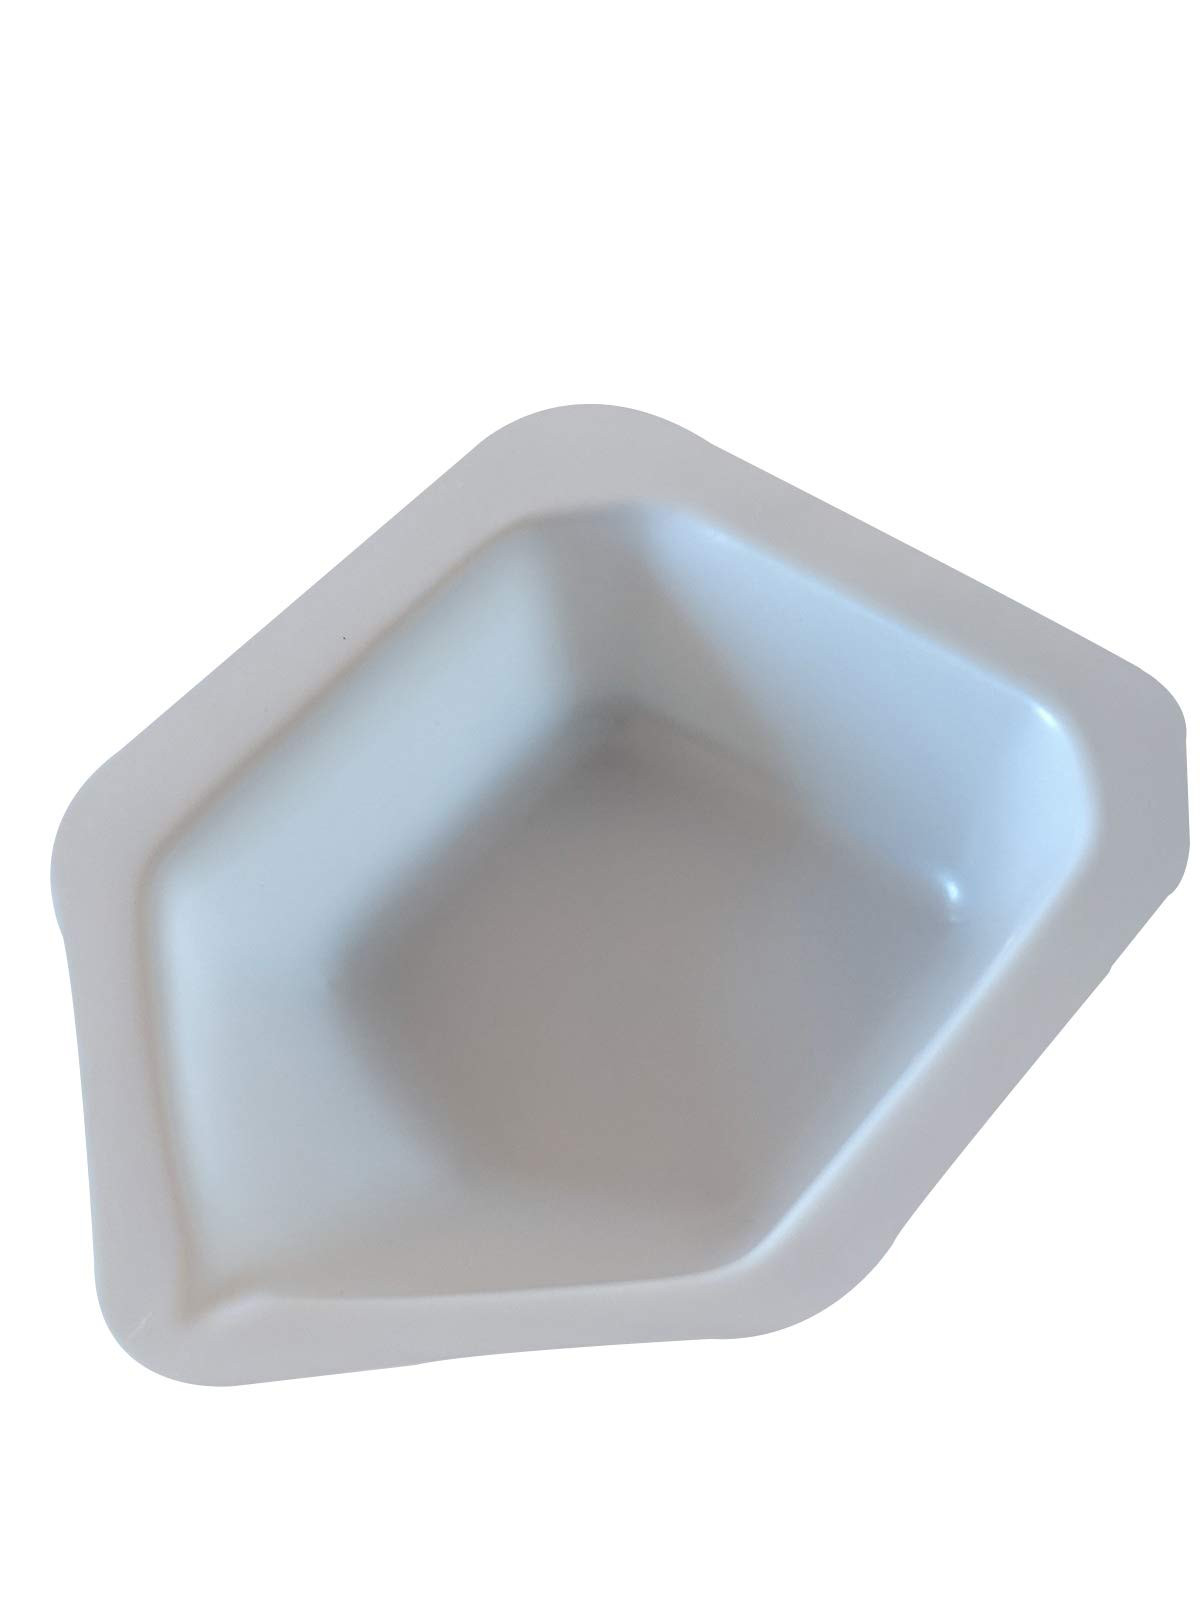 Pointed Polystyrene Weigh Canoe Boats, Large Dish 3 7/8 in x 6 5/8 in x 1 1/8 in [Pack of 125]